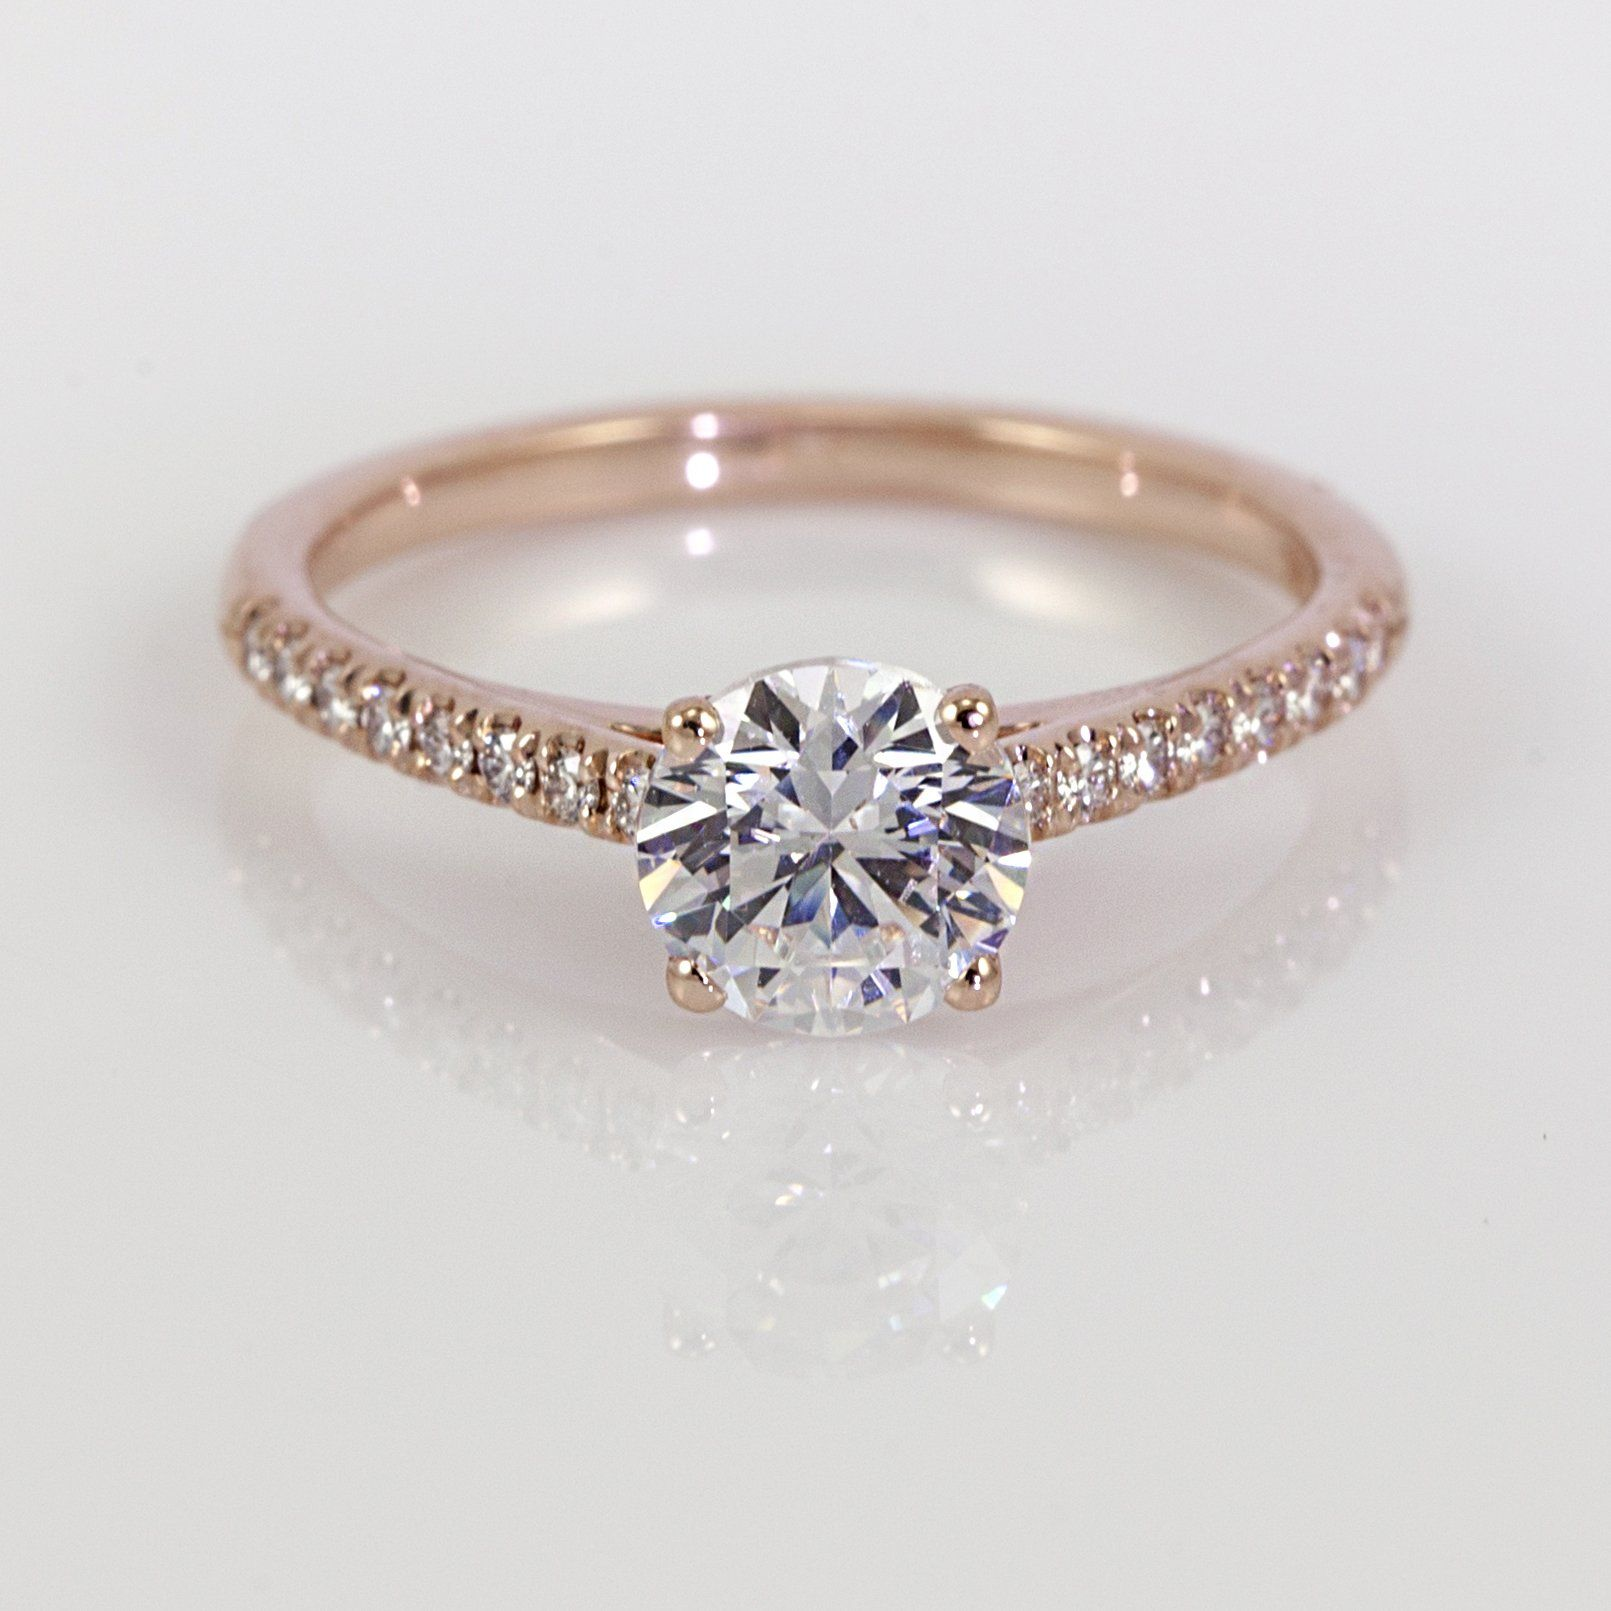 gold rose and by for tiny karat her this jewel box bands mark eternity halfway ring rings elegant engagement bridal product diamonds archives in wedding with patterson micro category band indulges